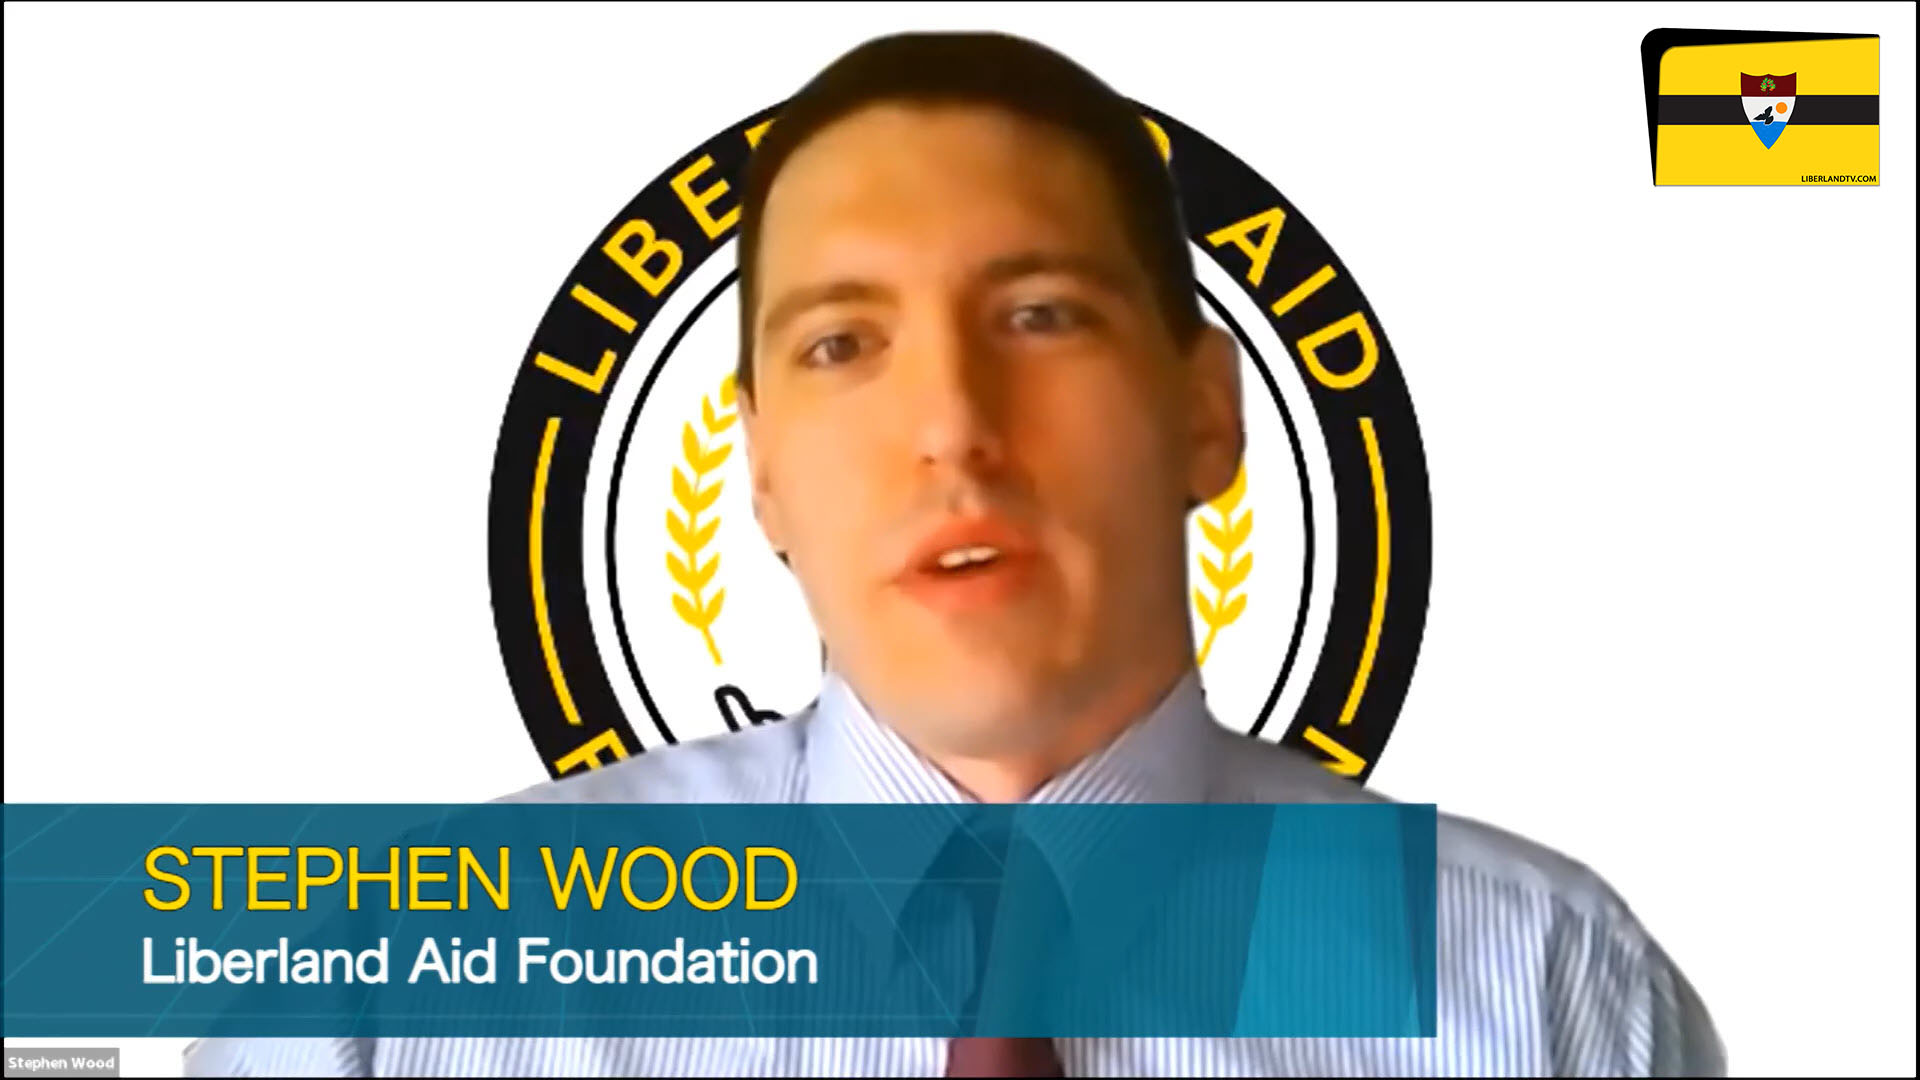 1 Liberland Aid Foundation Stephen Wood - 5th Anniversary Of Free Republic of Liberland in VR president of Liberland, Vít Jedlička Roger Ver bitcoin btc blockchain somnium space crypto 2